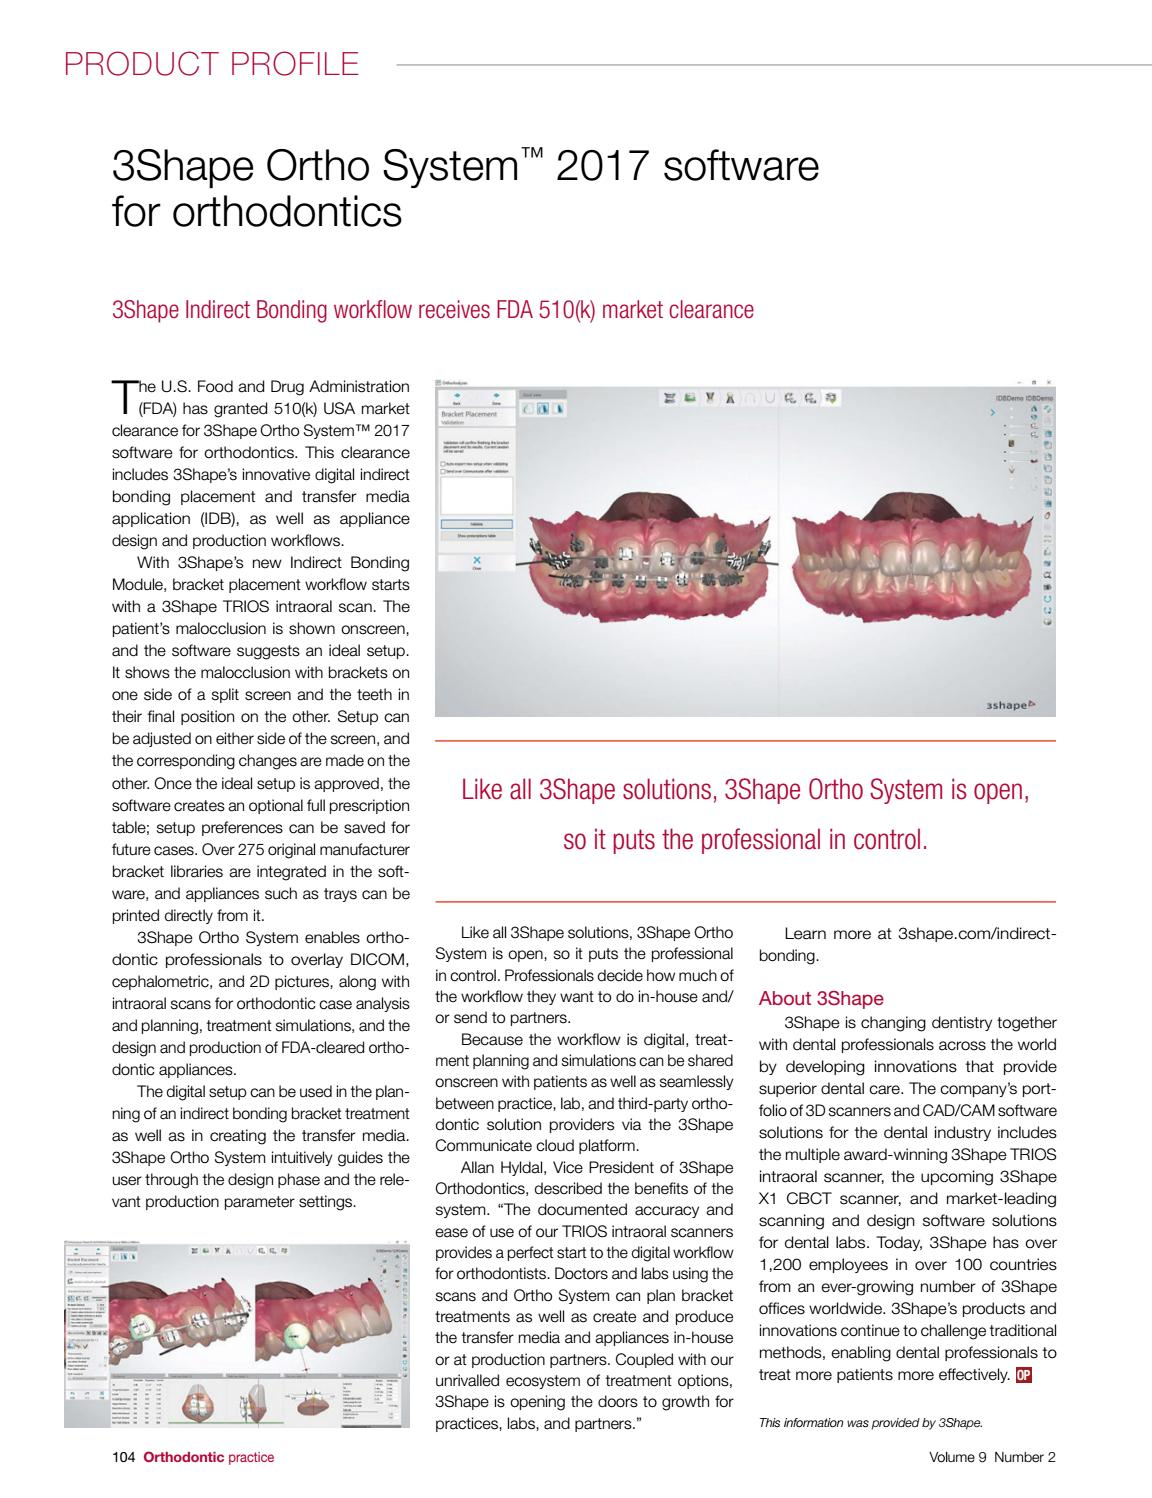 Orthodontic Practice US March/April 2018 Vol 9 No 2 by